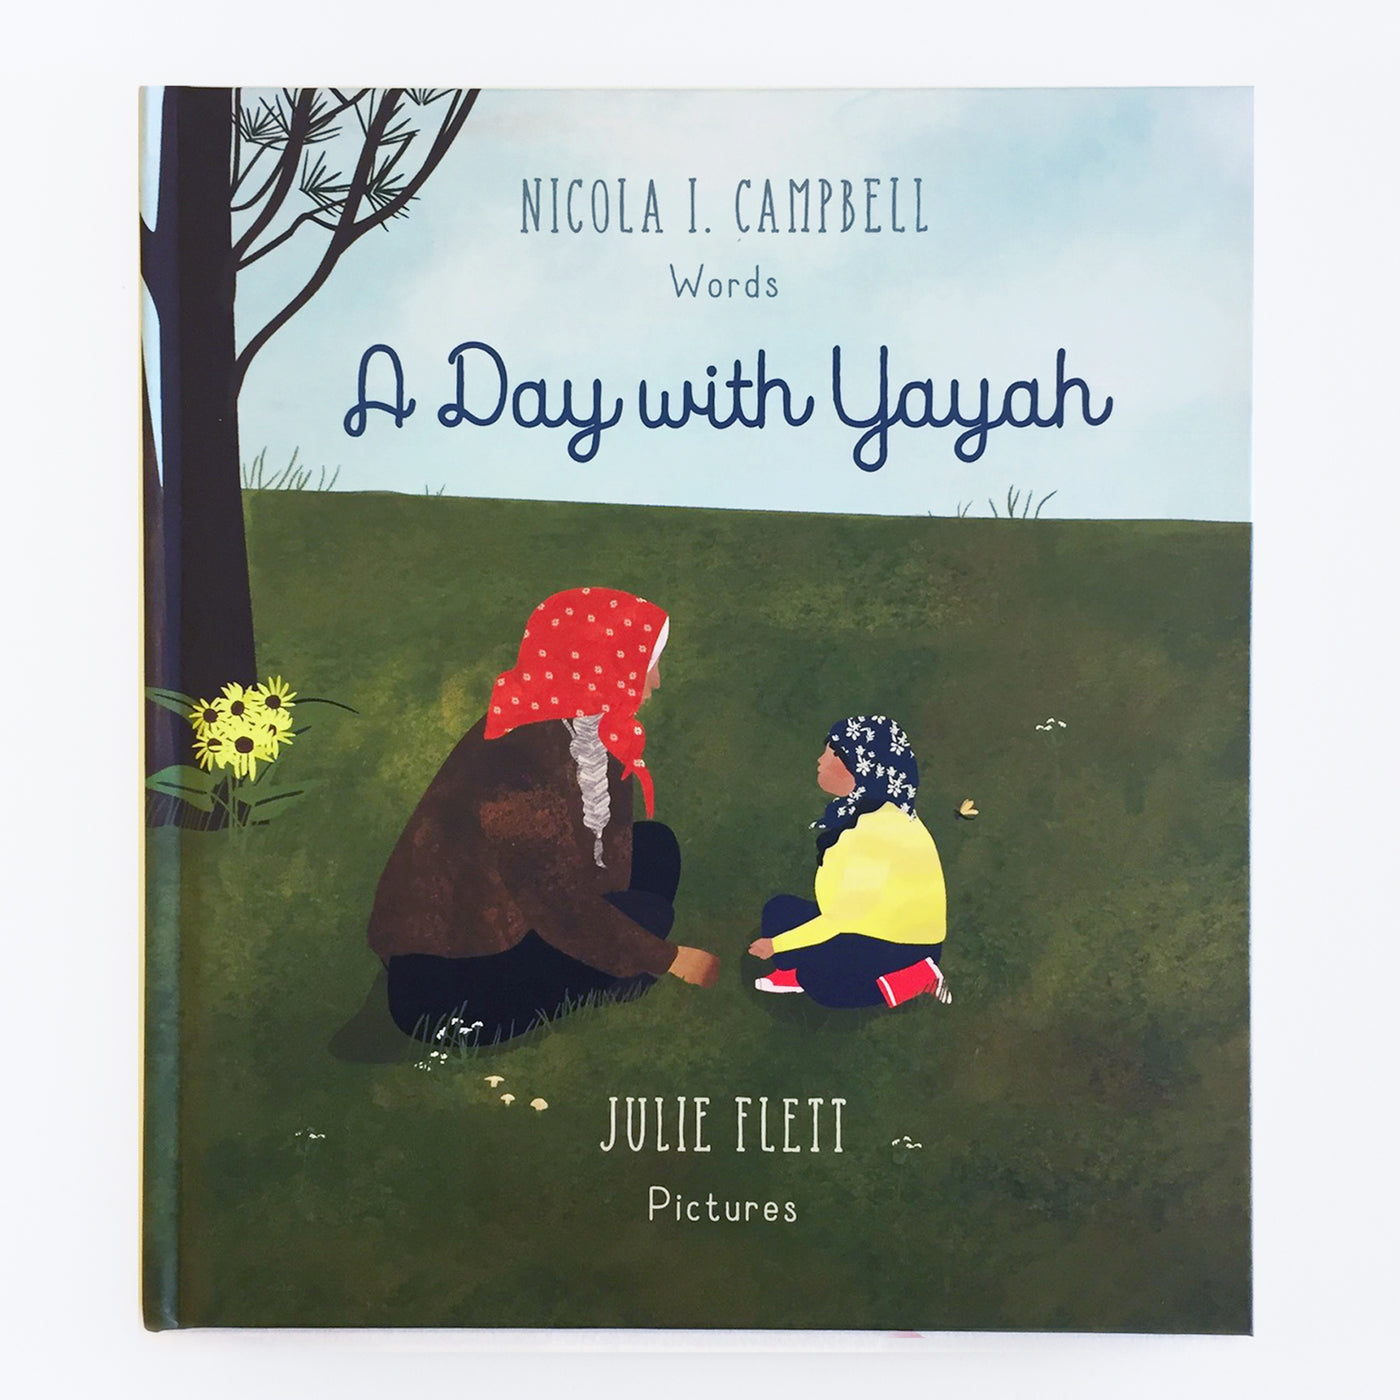 A Day With Yayah by Nicola I. Cambell & Julie Flett